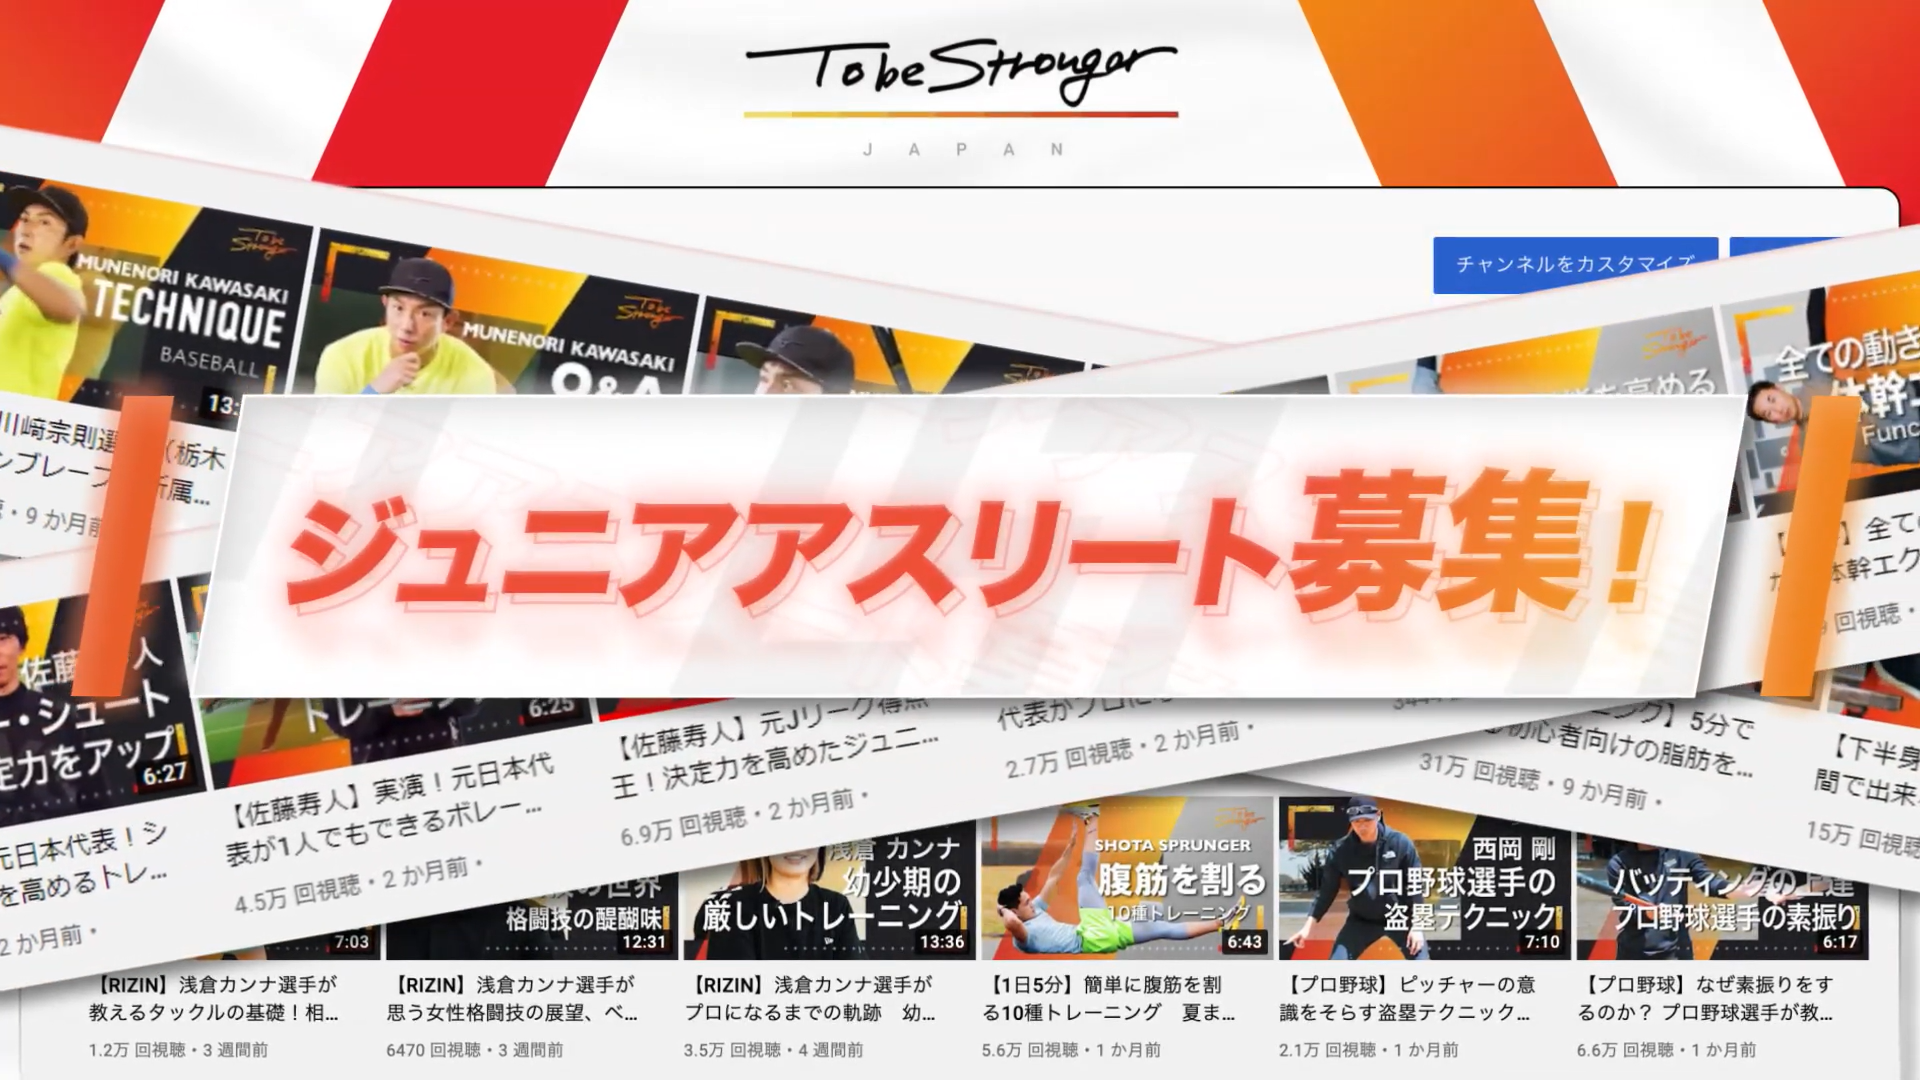 【To be Stronger】ジュニアアスリート出演募集